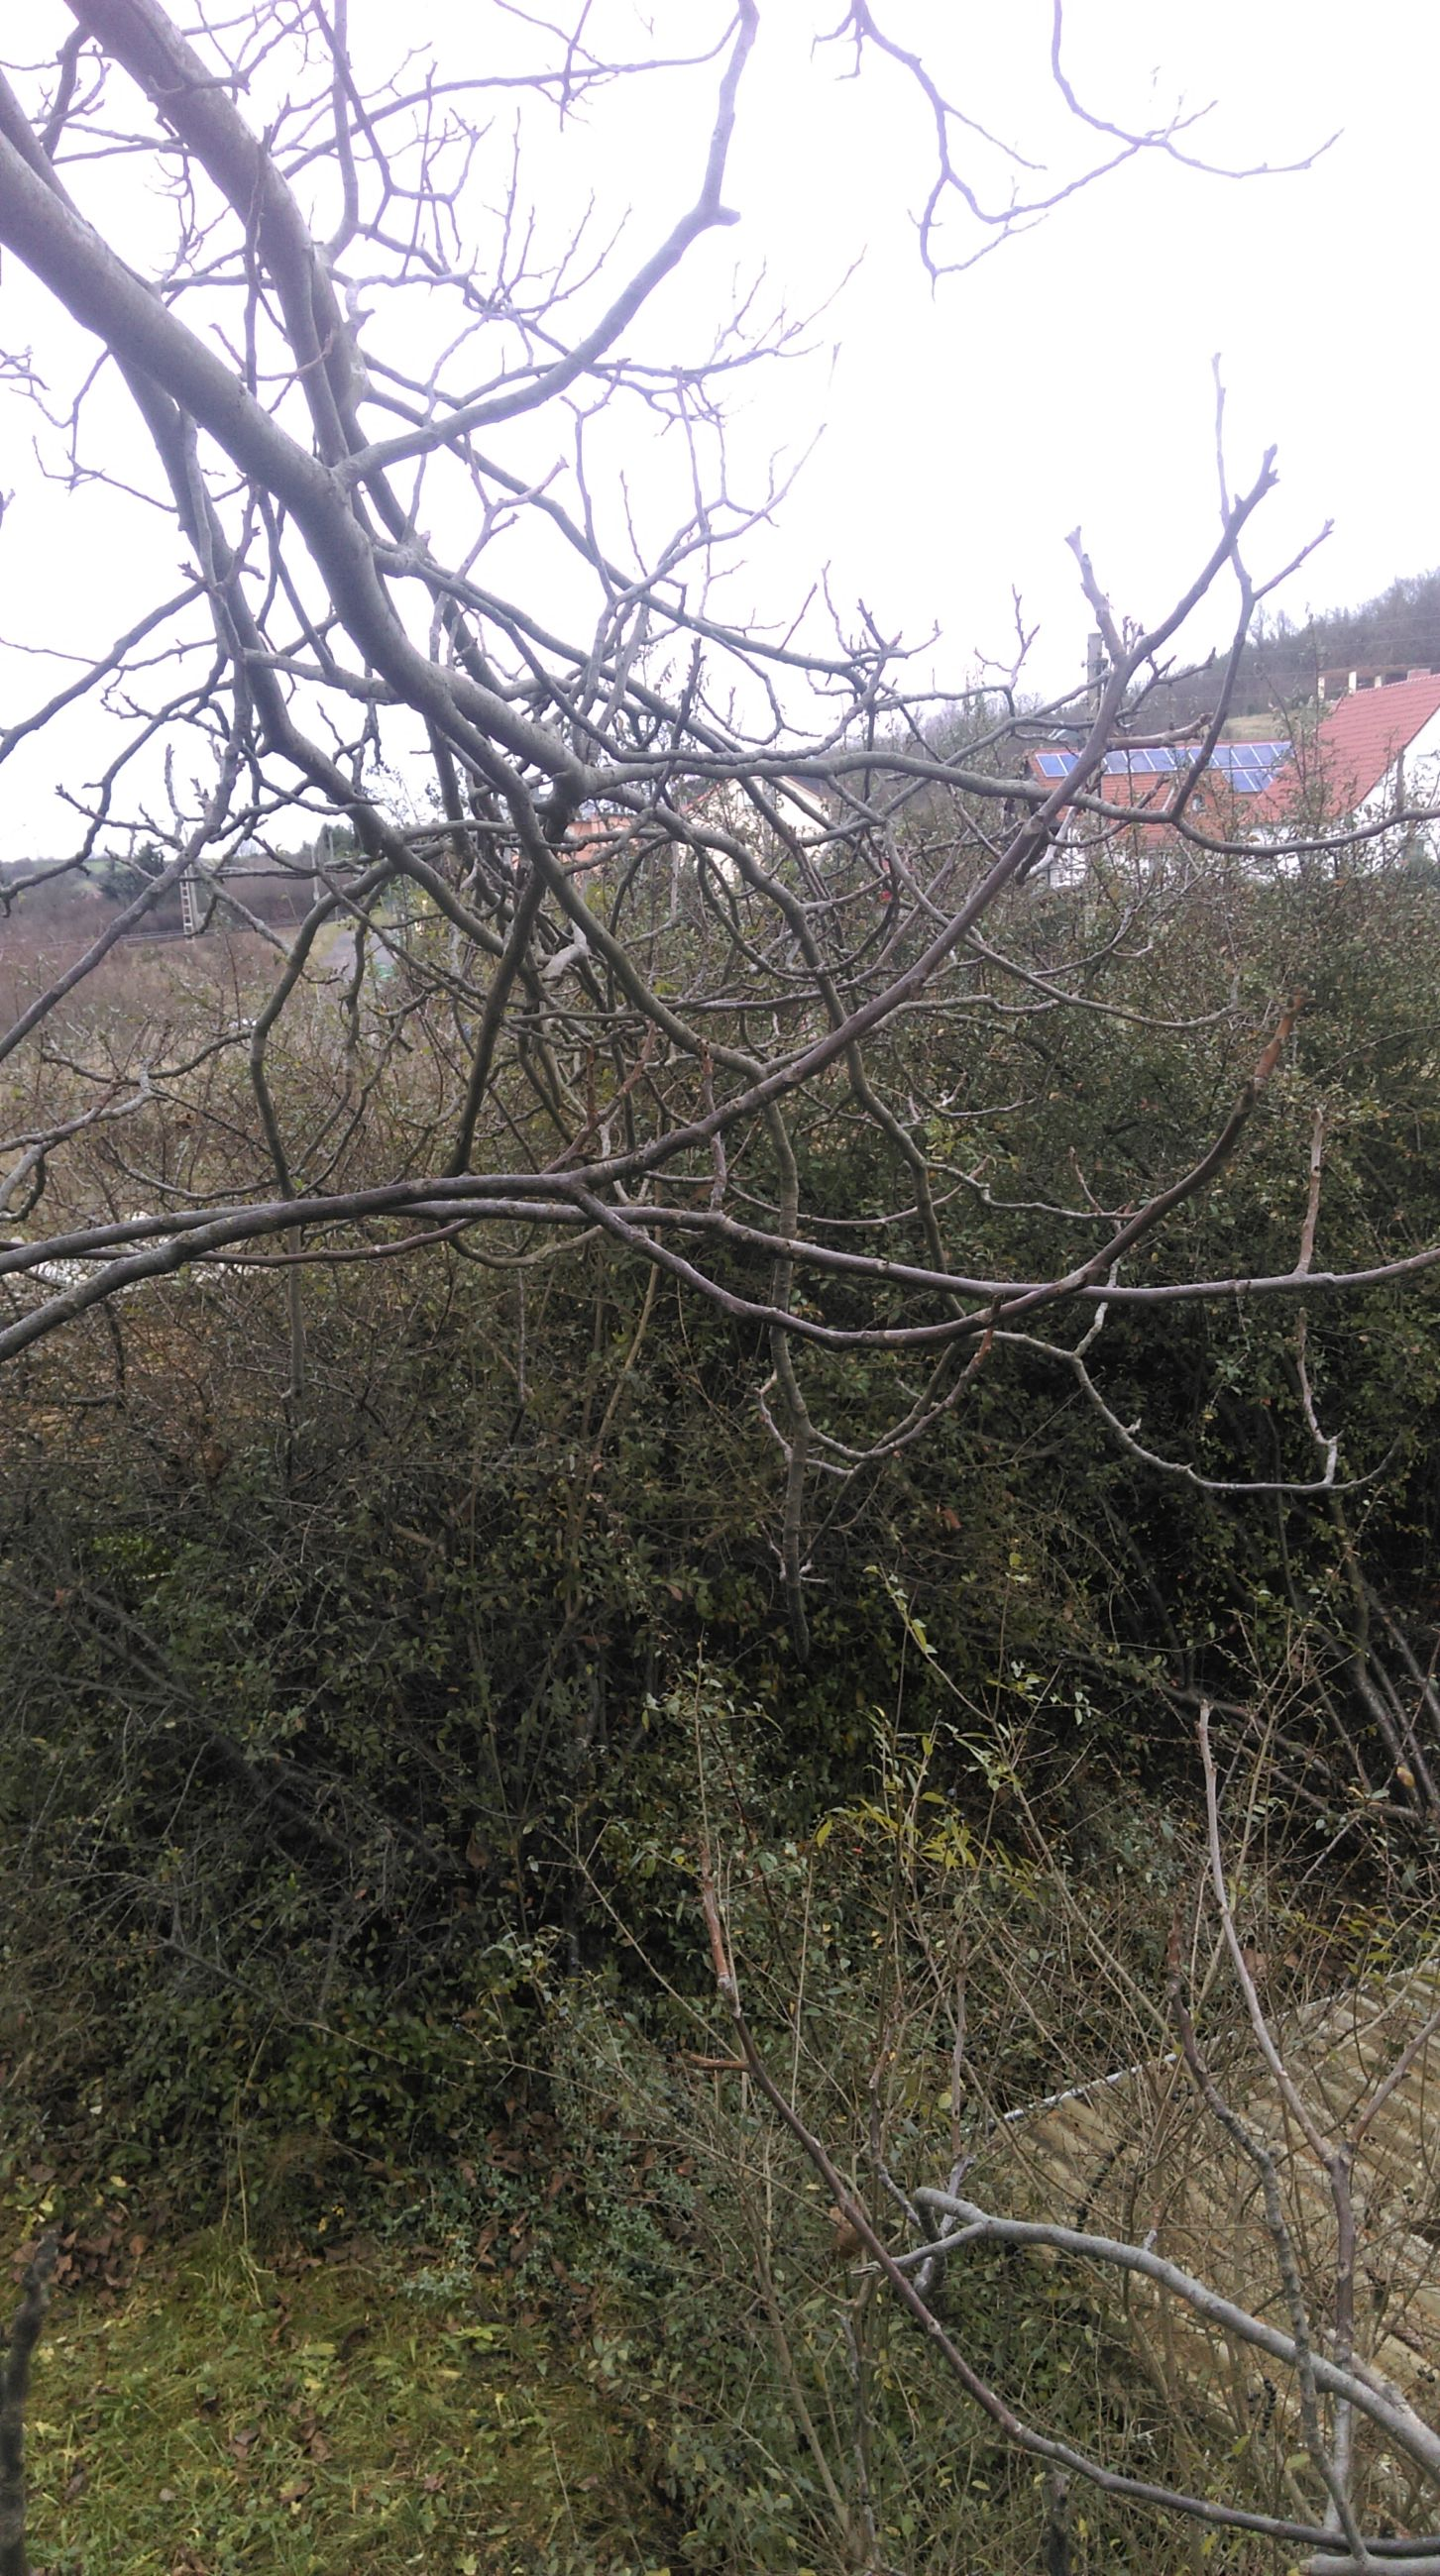 bare tree, branch, tranquility, tree, grass, field, nature, tranquil scene, landscape, growth, sky, clear sky, scenics, beauty in nature, plant, non-urban scene, outdoors, dry, day, no people